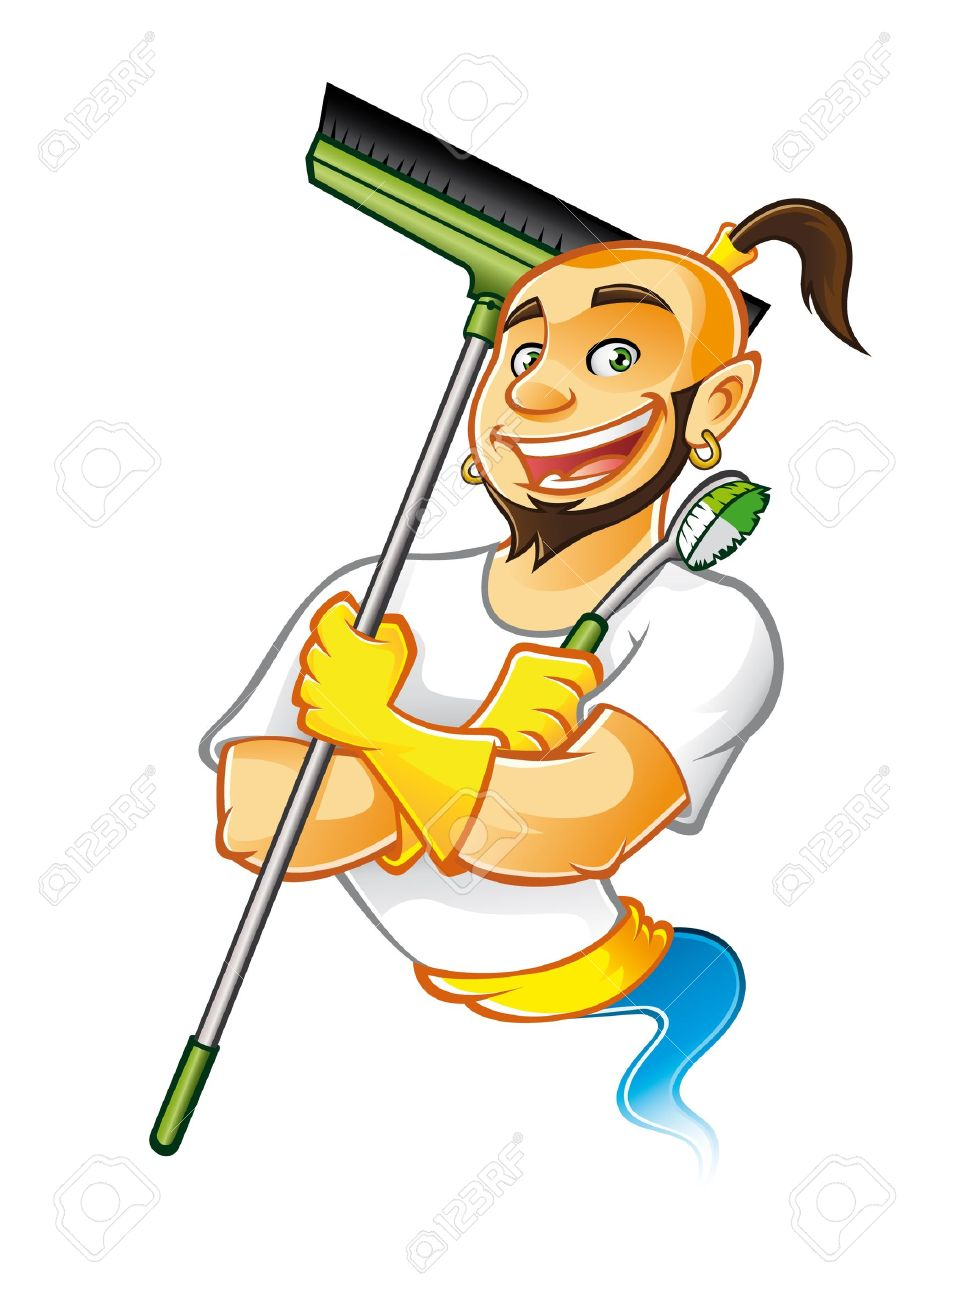 genie male were carrying brooms and brushes to clean something with arms crossed and a big smile happy Stock Vector - 16974269